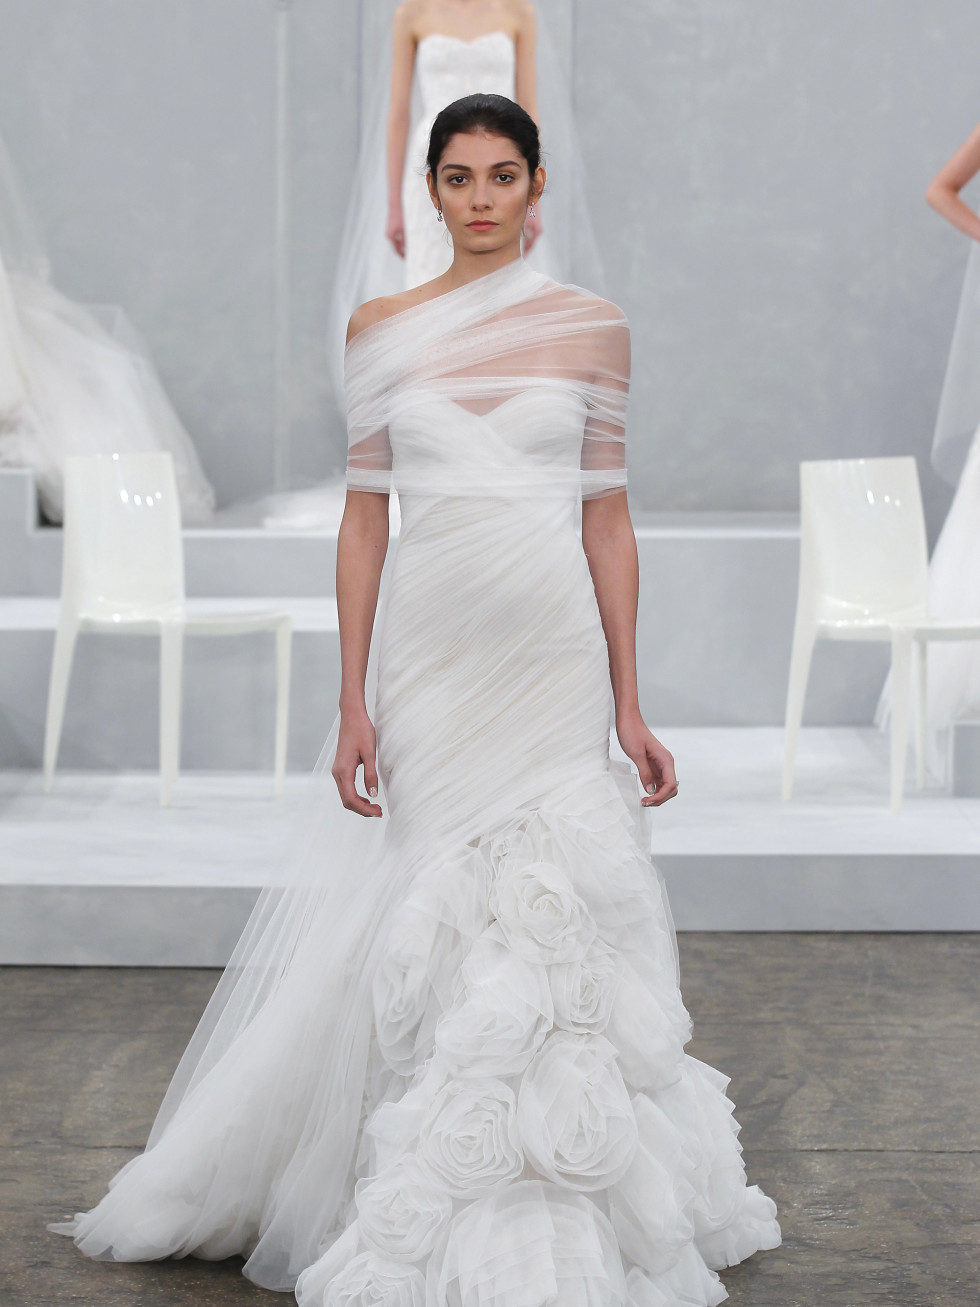 Escape wedding dress from Monique Lhuillier